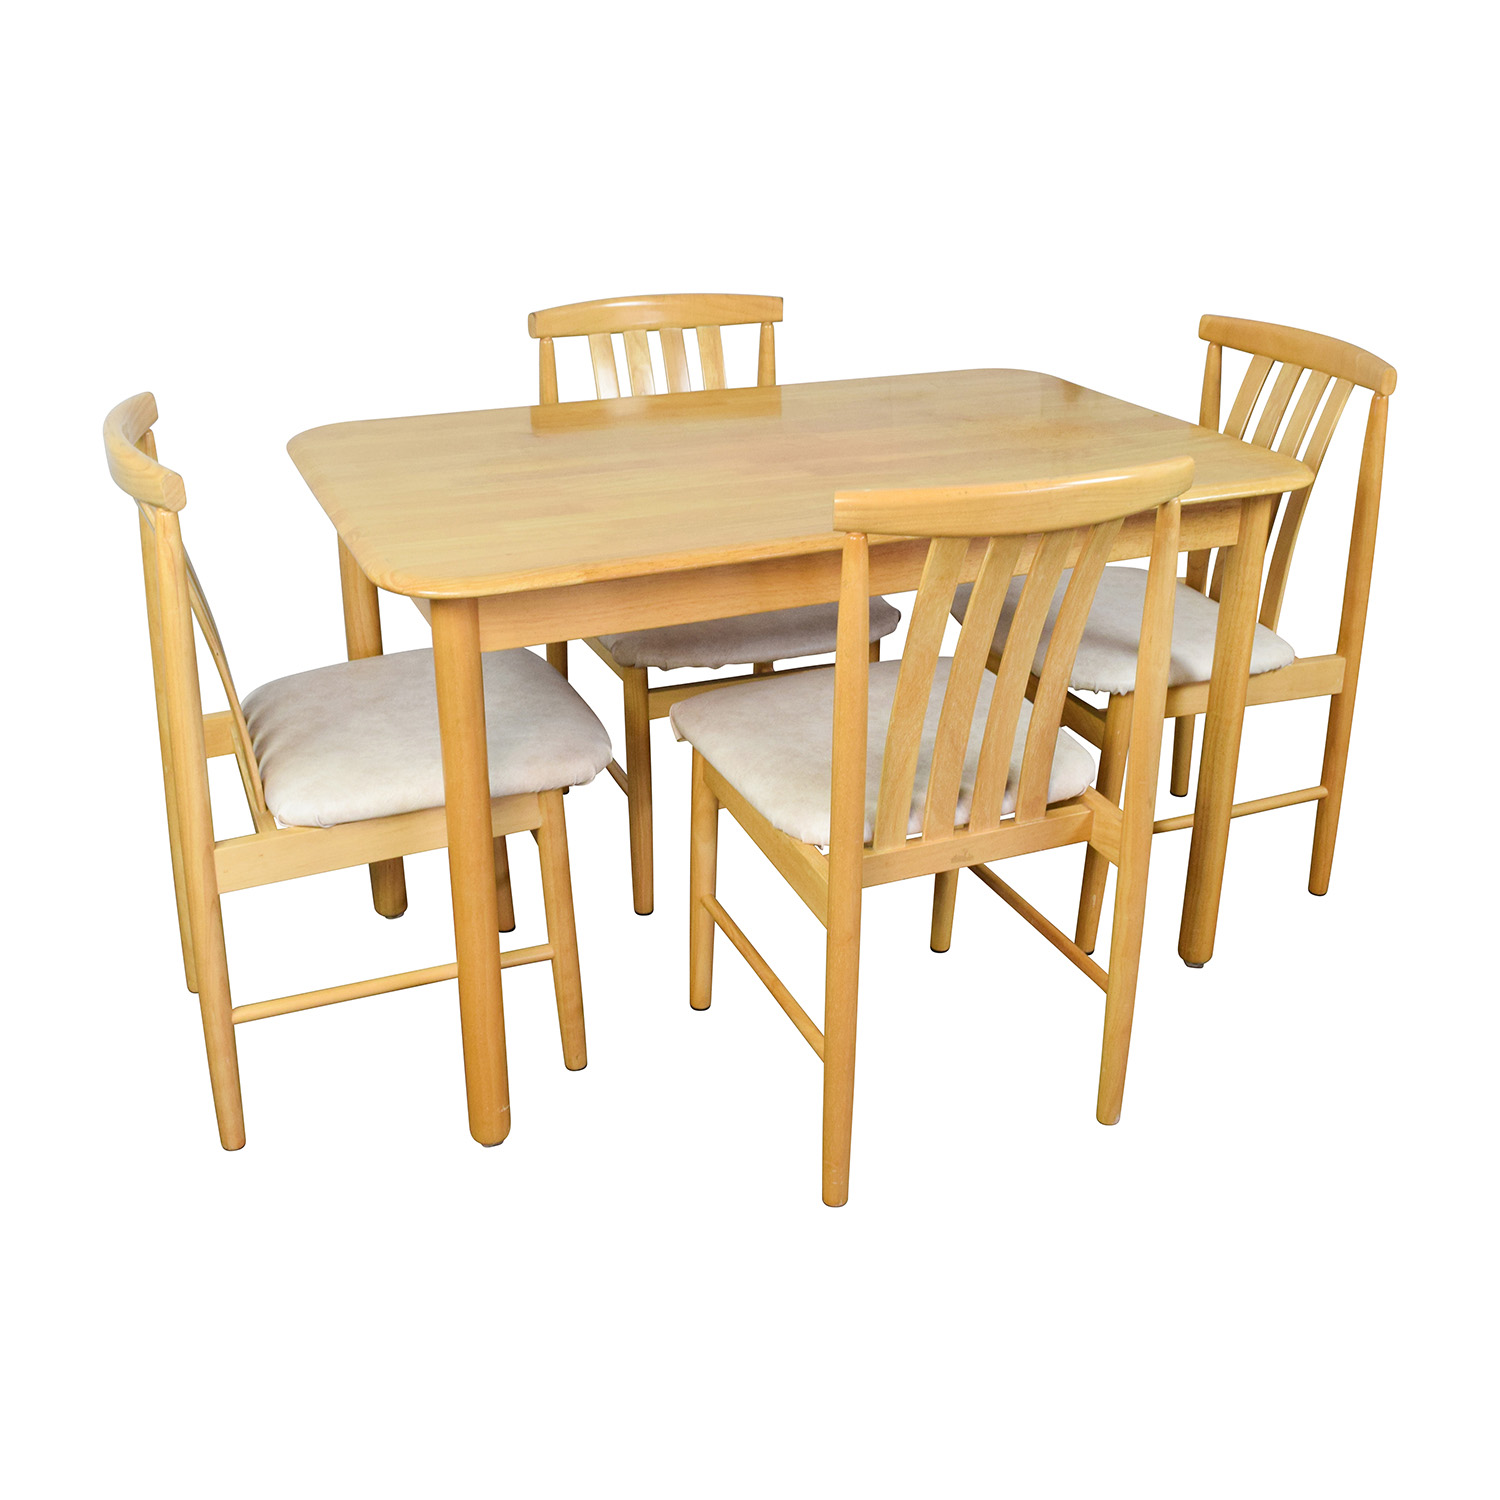 Light Wood Dining Table with Four Chairs coupon